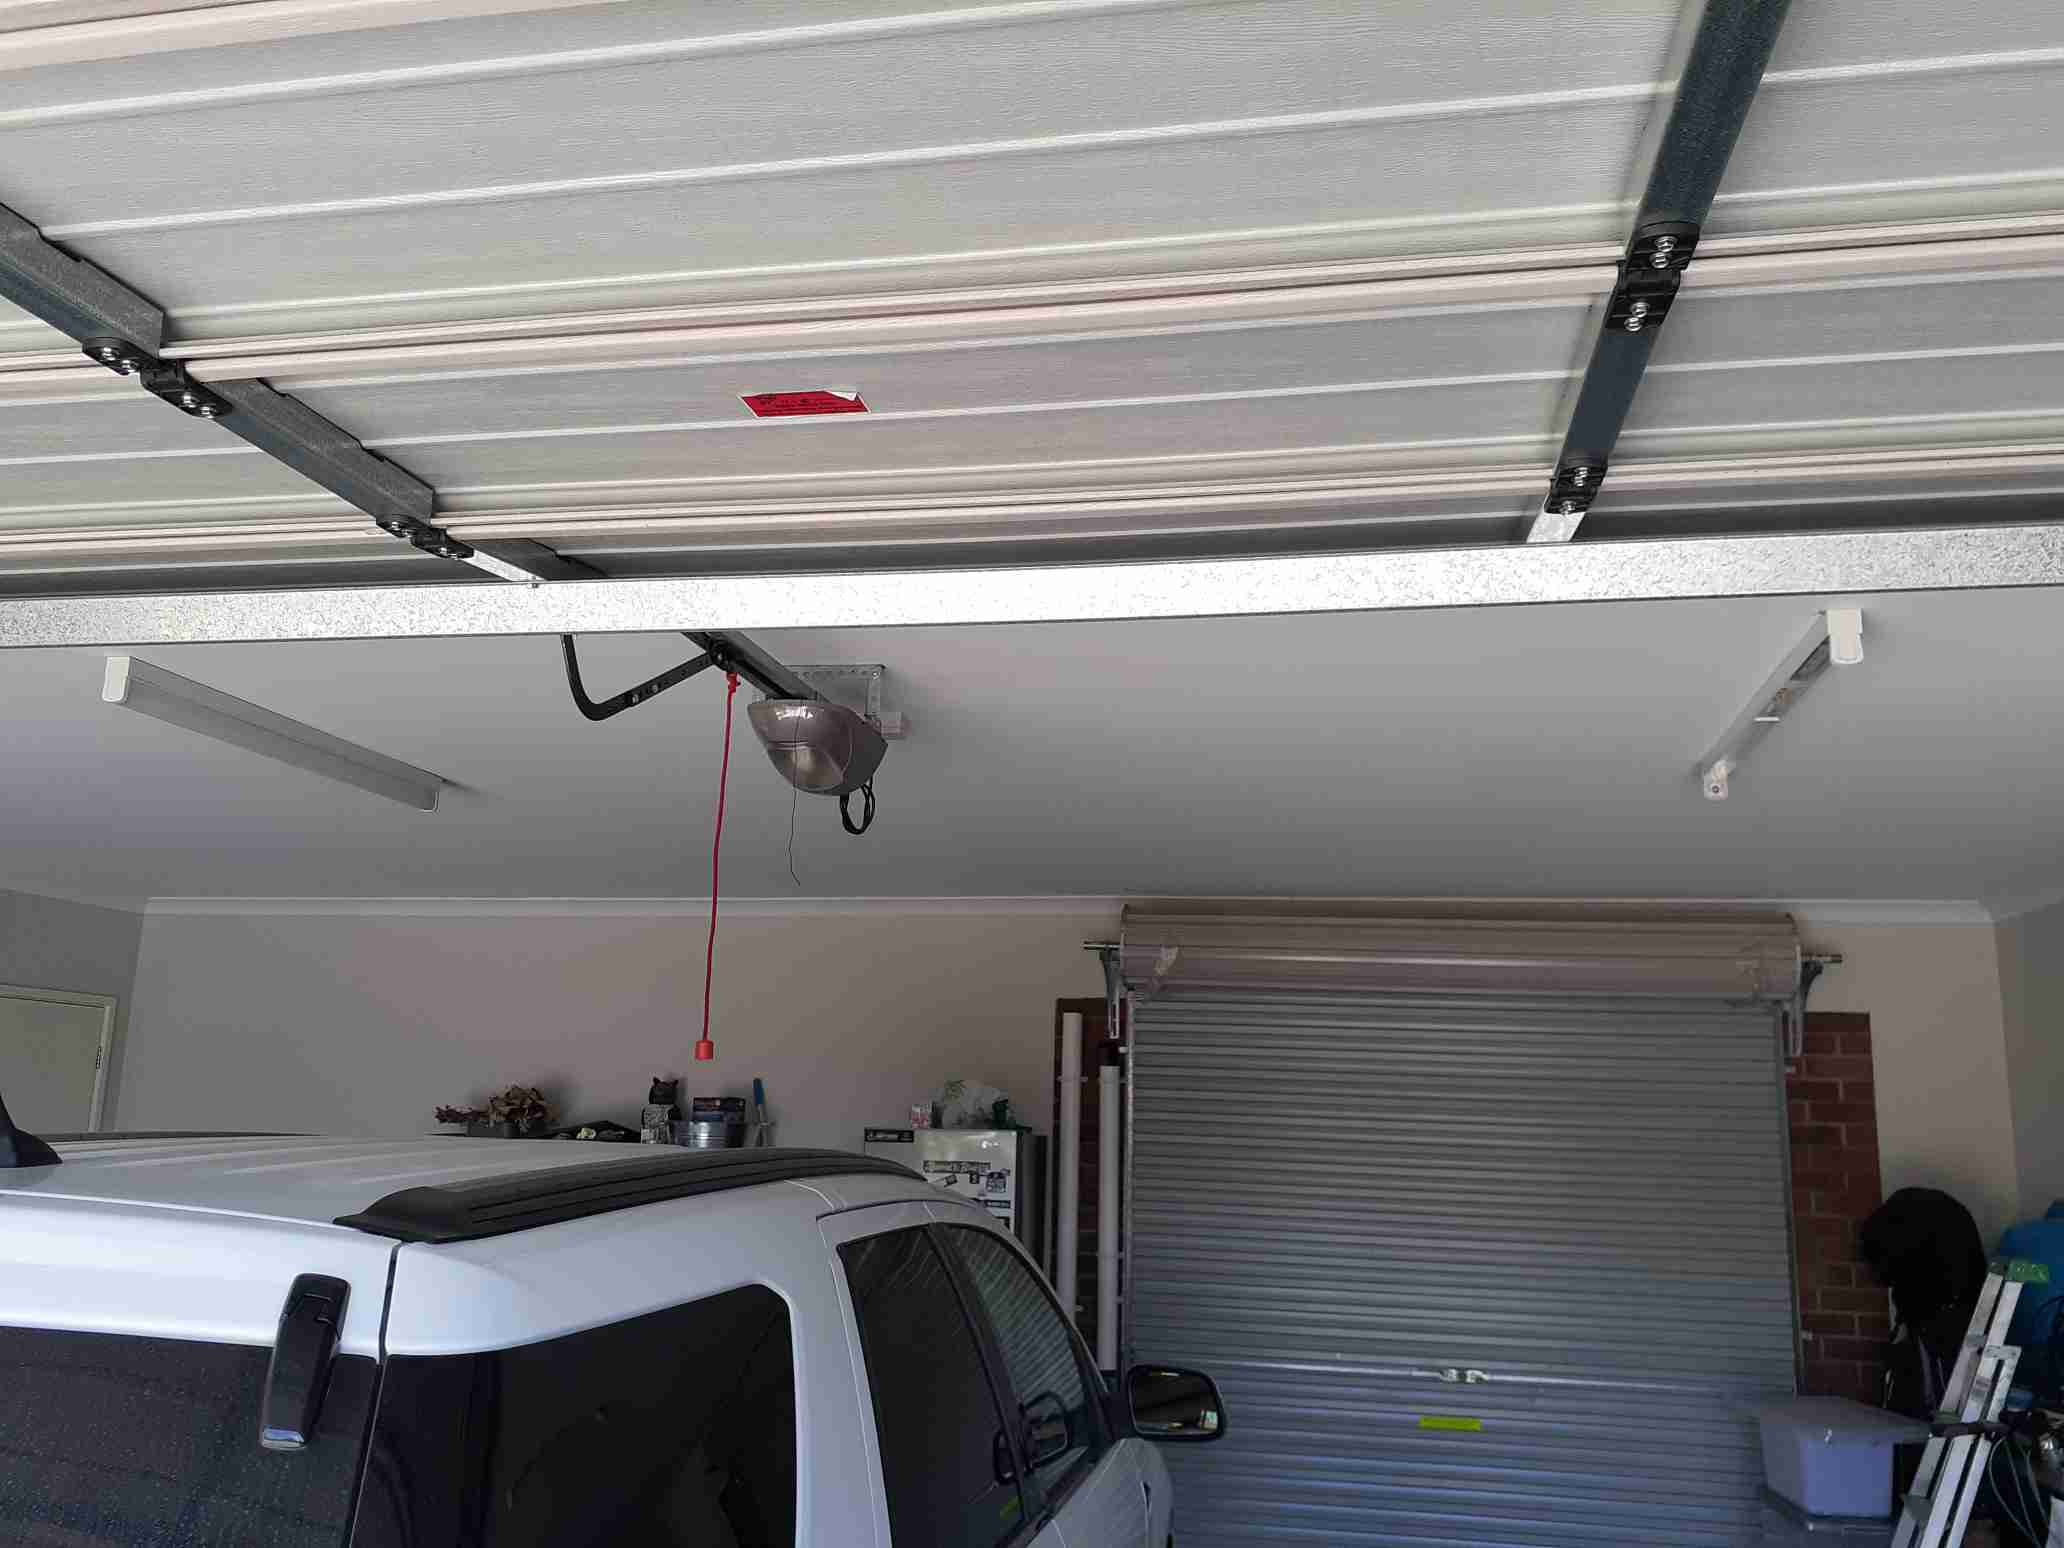 Electrical Installation - Lighting at Newcomb By Mr. Electric of Geelong via i4Tradies